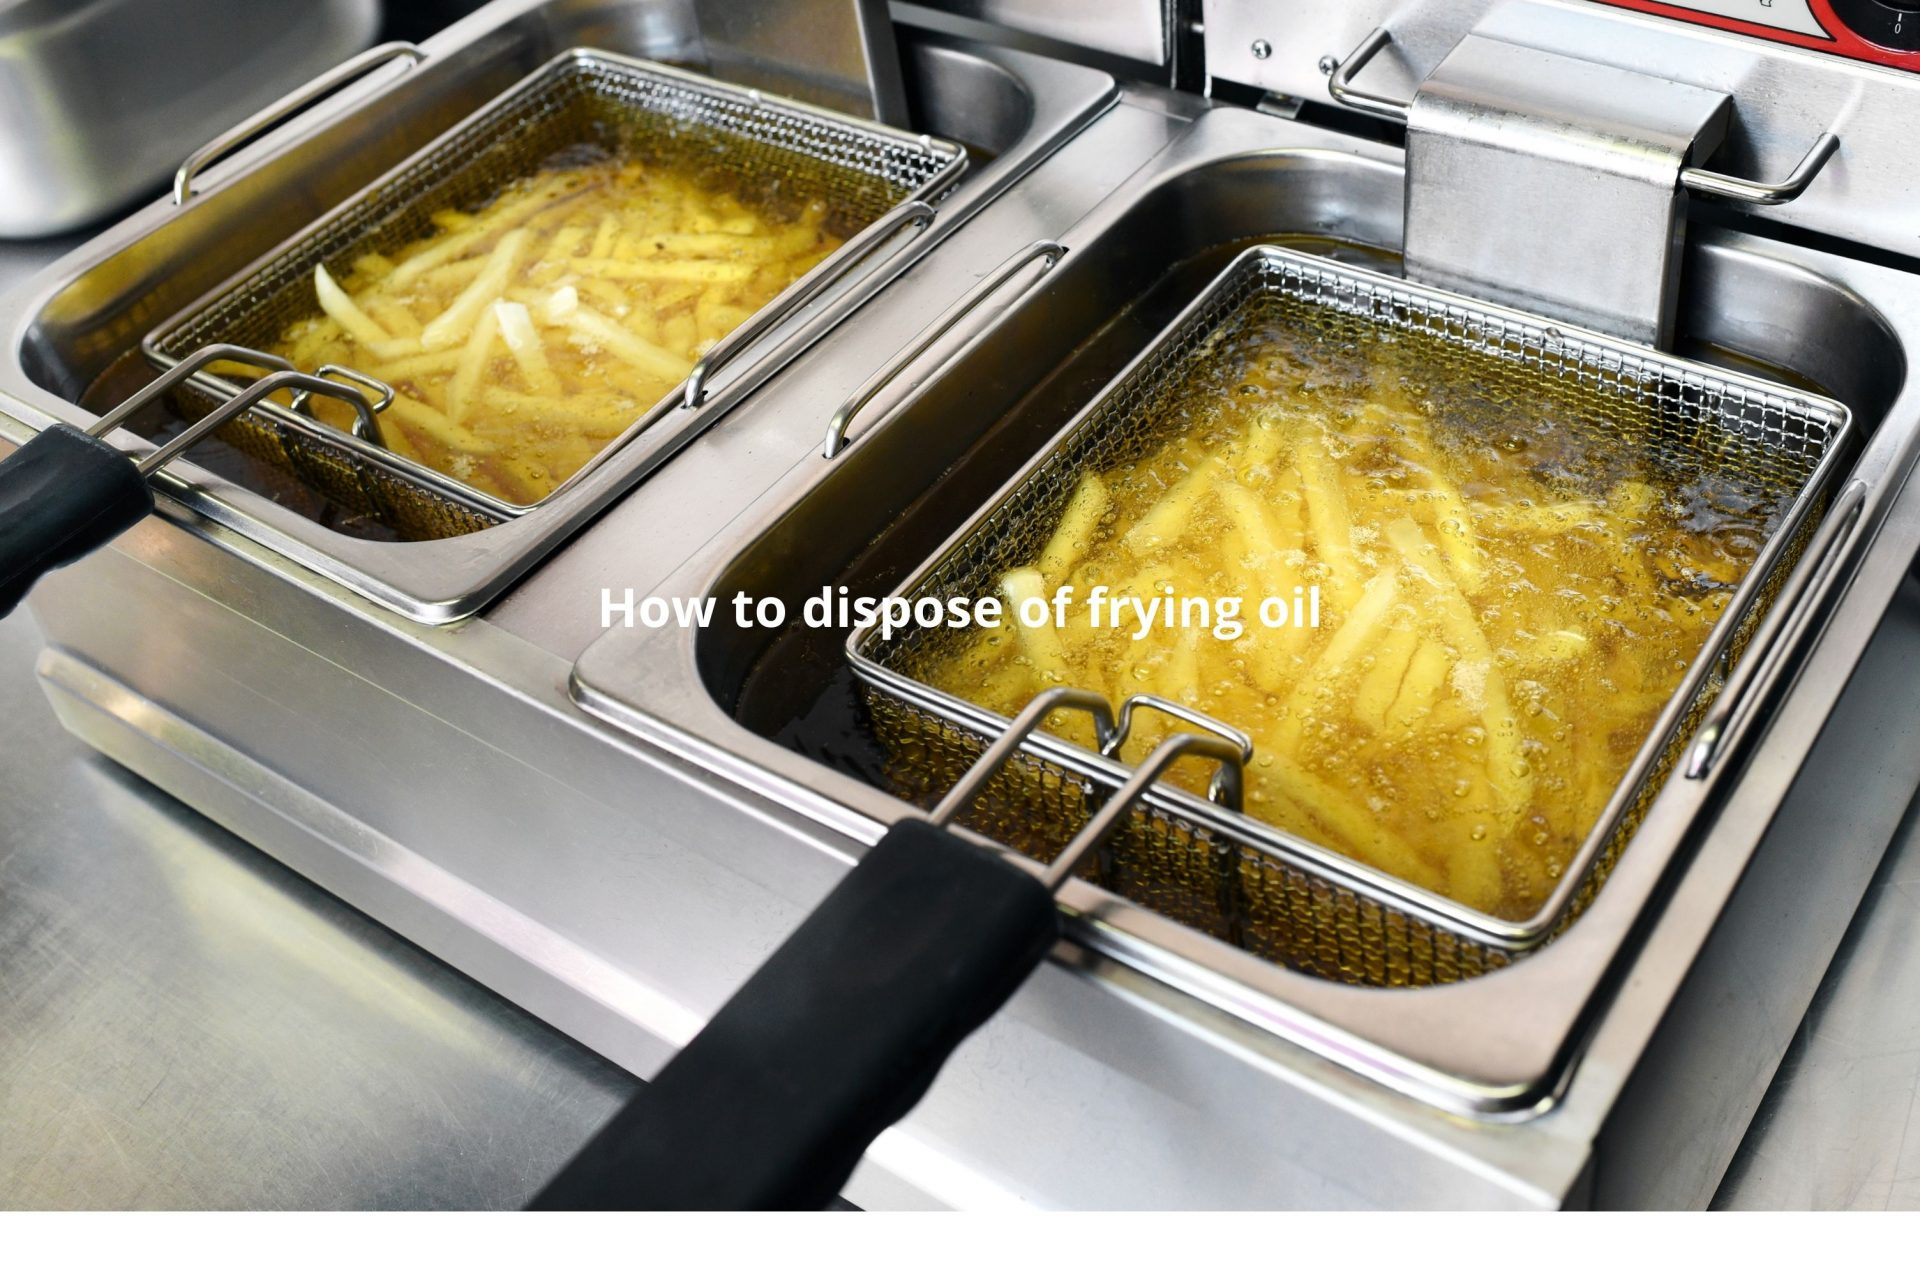 How to dispose of frying oil